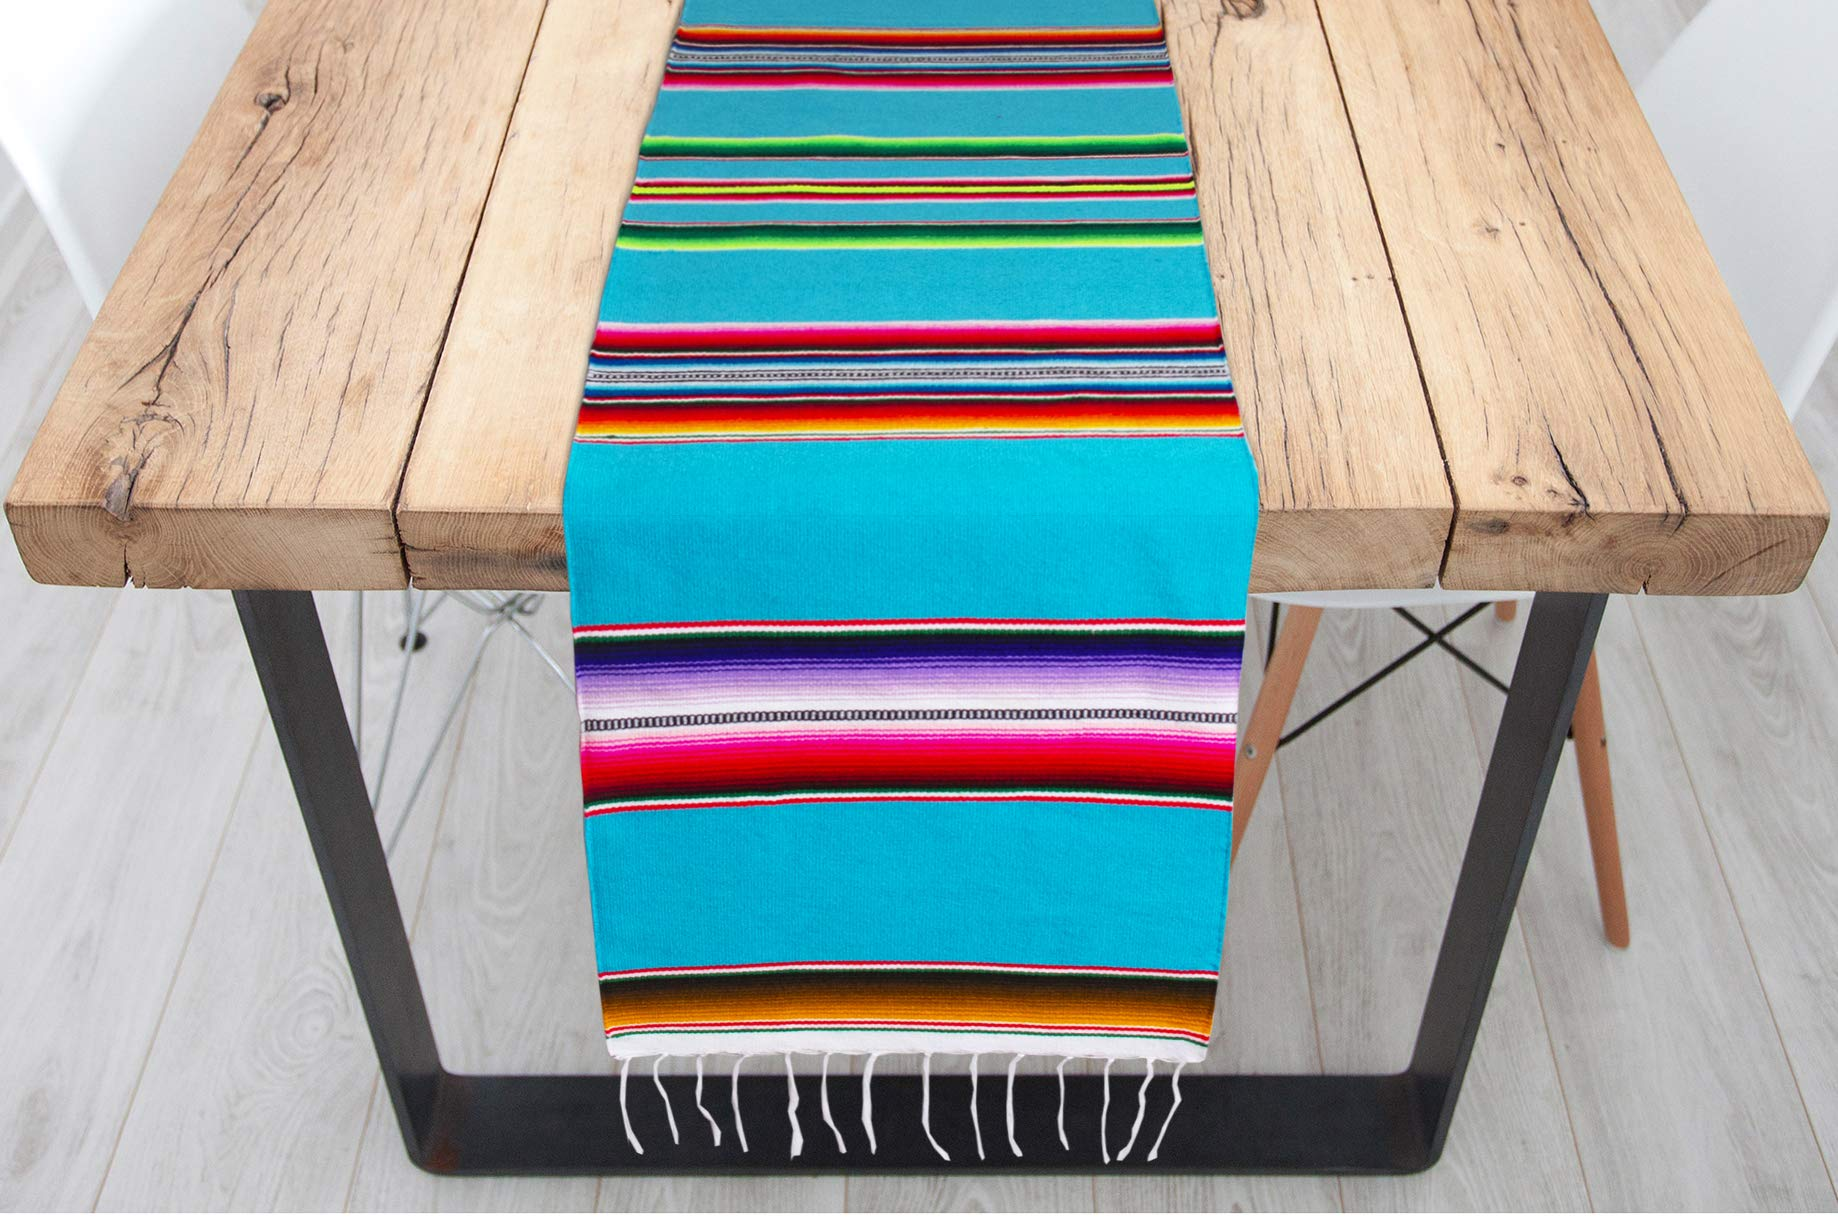 Genuine Mexican Premium Handwoven Bright MexicanTable Runner Saltillo Serape Colorful Striped Sarape 60'' x 12'' (Turquoise) by Threads West (Image #1)